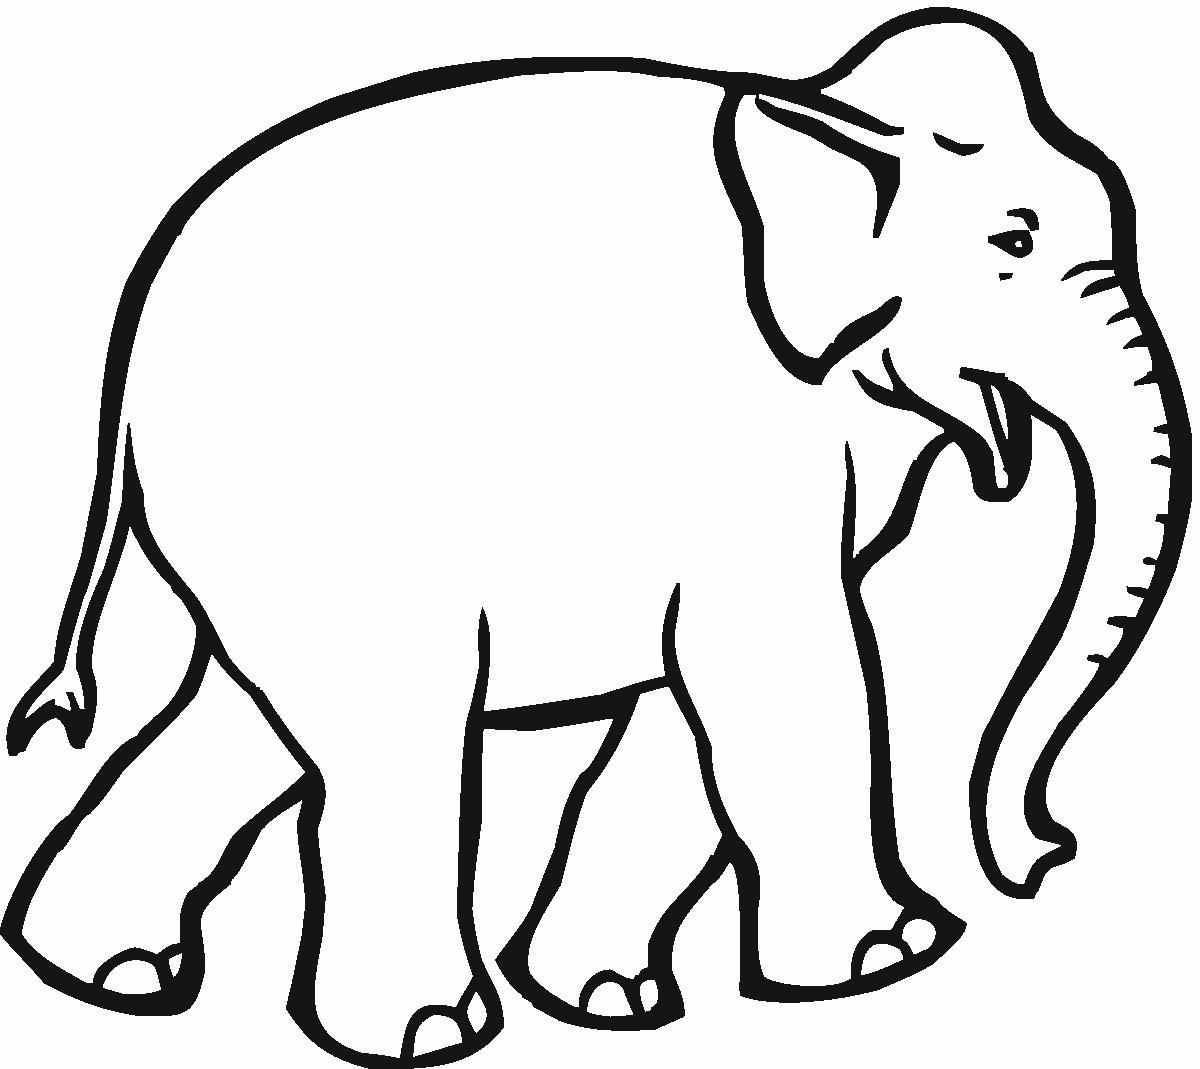 printable elephant coloring pages elephant drawing pages at getdrawings free download elephant pages coloring printable